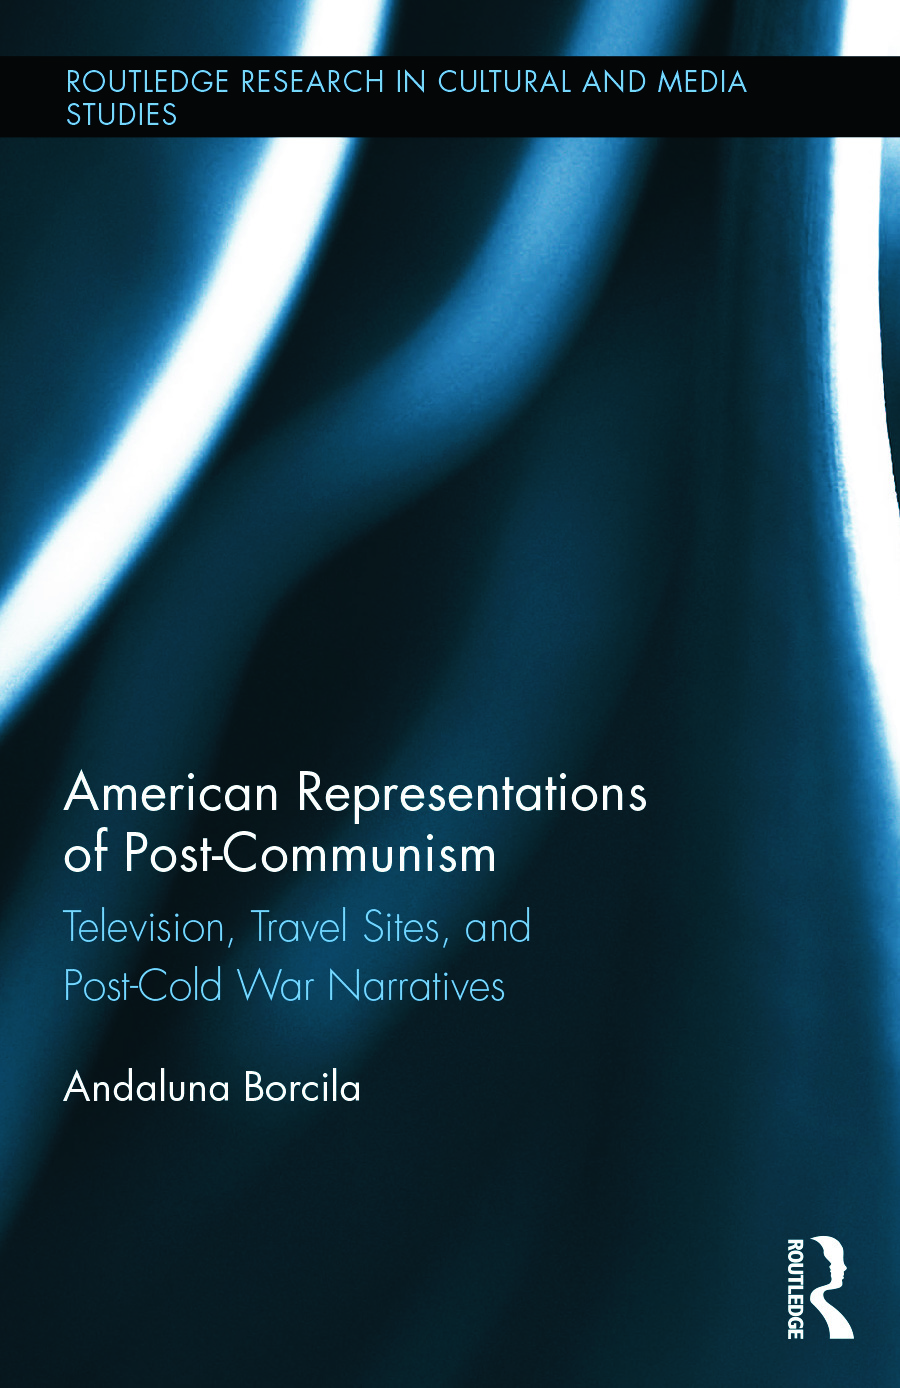 American Representations of Post-Communism: Television, Travel Sites, and Post-Cold War Narratives book cover